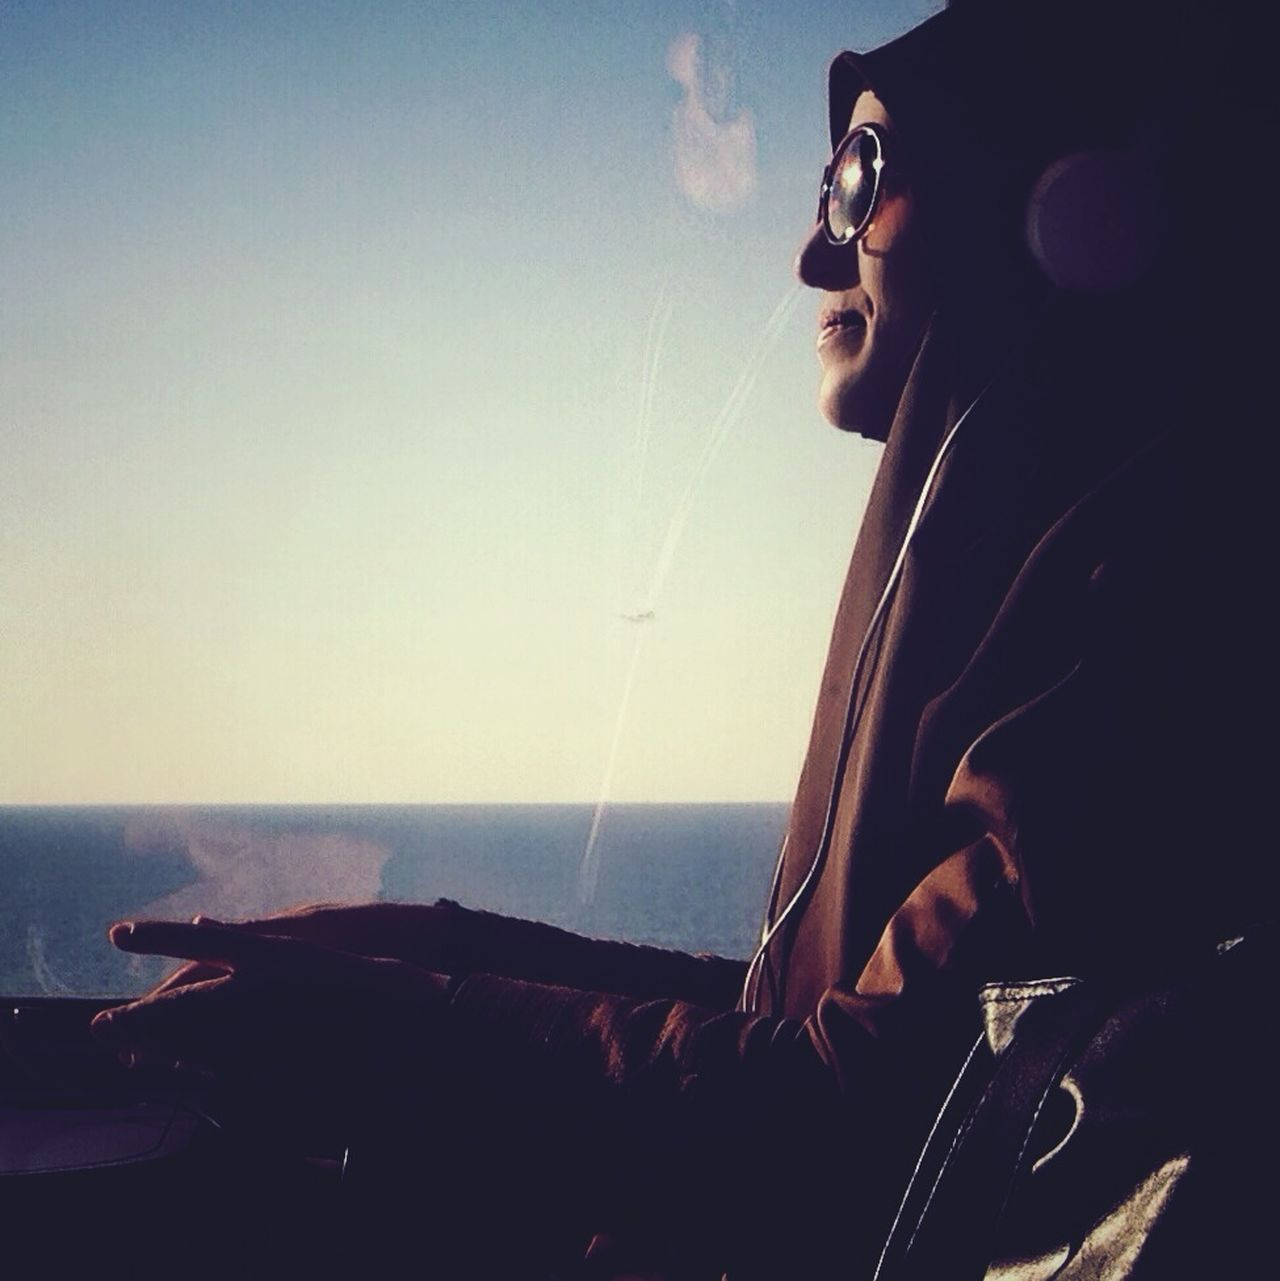 Mytrainmoments Leonie Filter AMPt_community